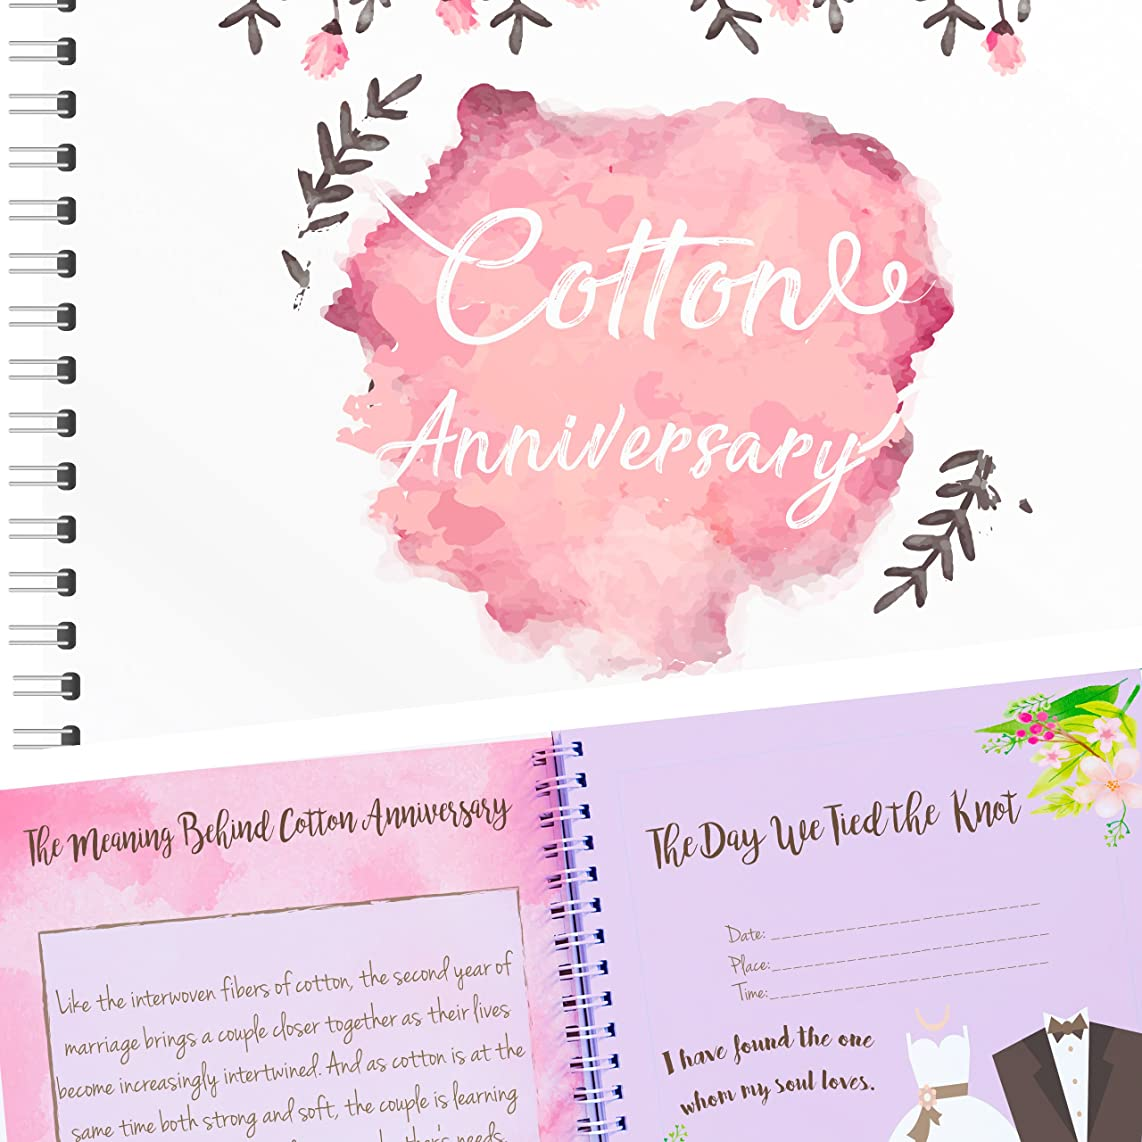 Unique 2nd Wedding Anniversary Memory Book with Stickers and A Matching Card - 5-Second Memory Journal For Your Special Cotton Anniversary - The Perfect Keepsake Booklet for Special Memories